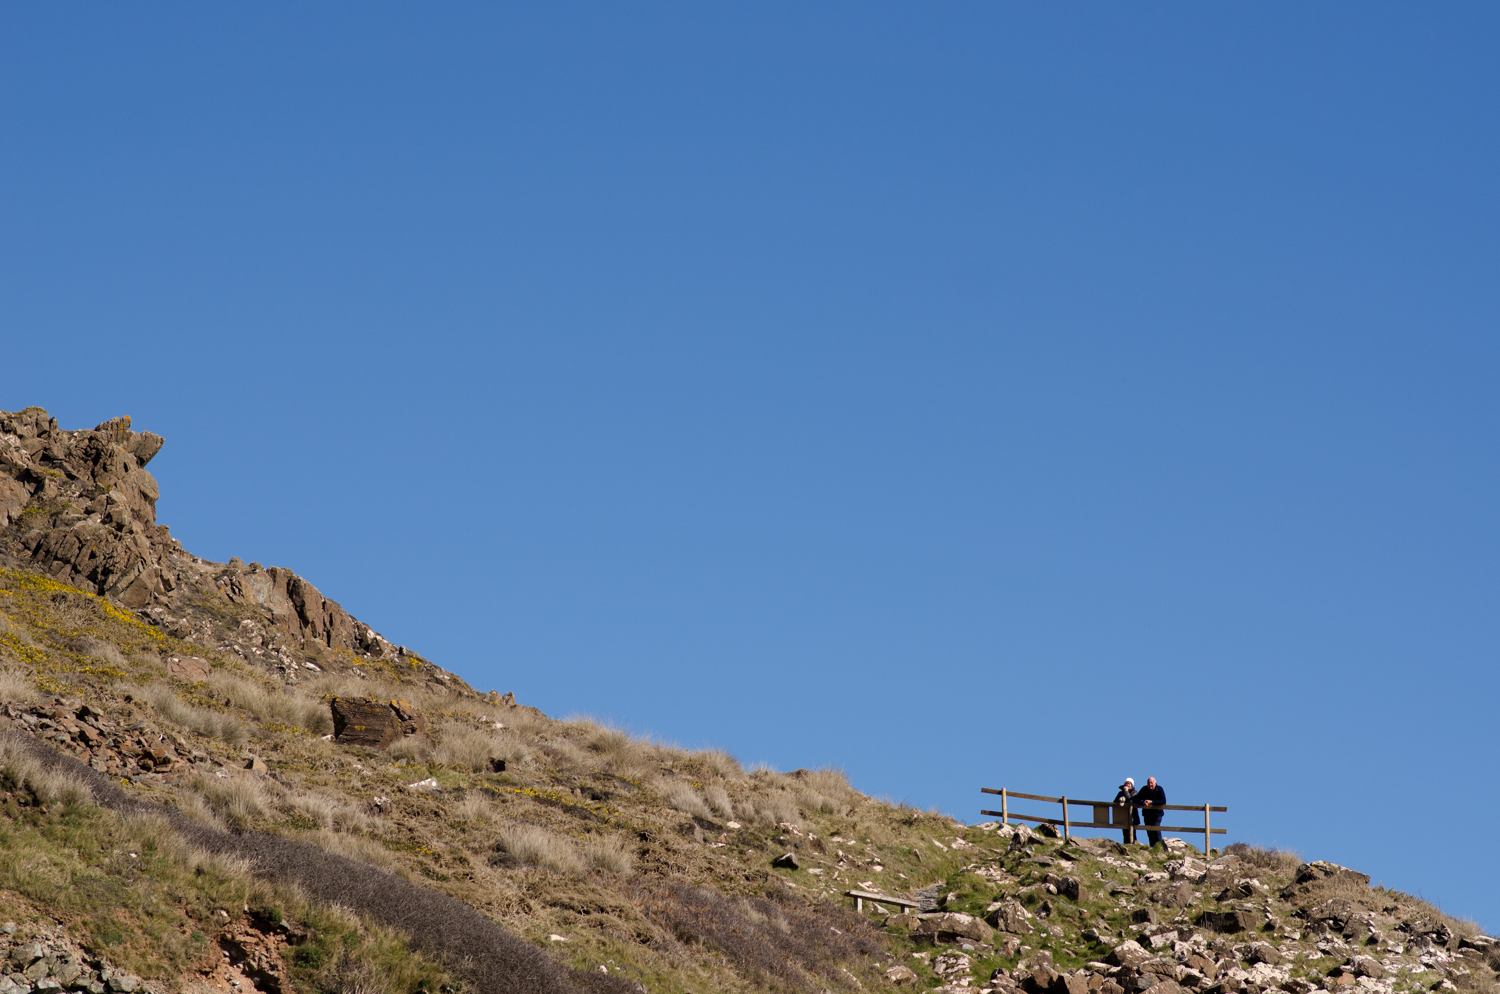 The couple on the cliff enjoying kynance cove